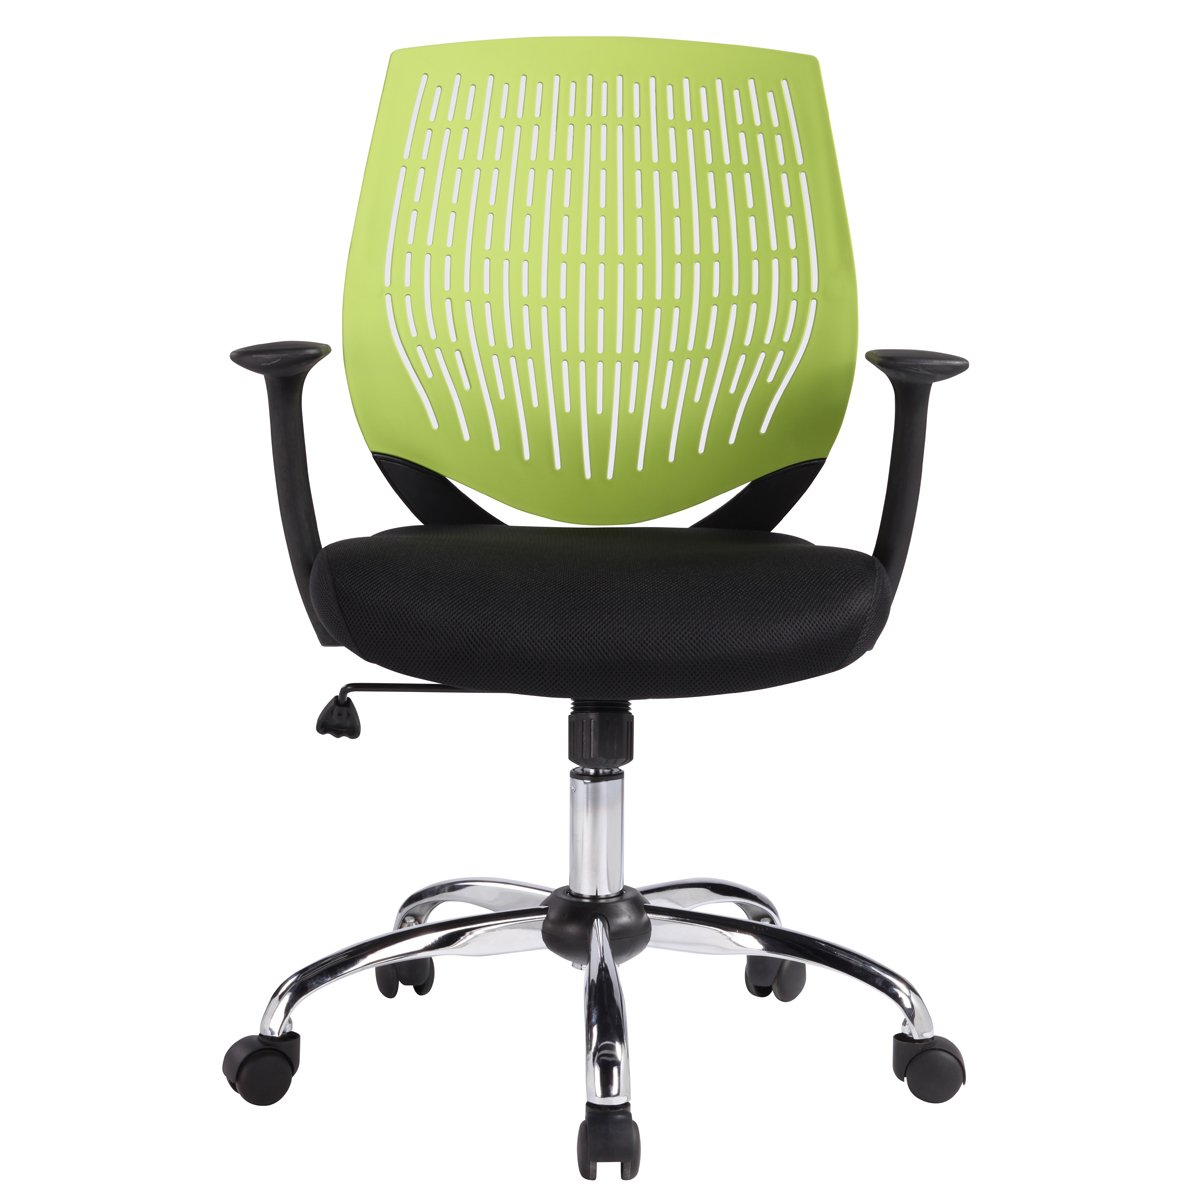 HollyHOME Ergonomic Mesh Task Chair, Mid Back Office Swivel Computer Desk Chair with Super Soft Back Support, Green